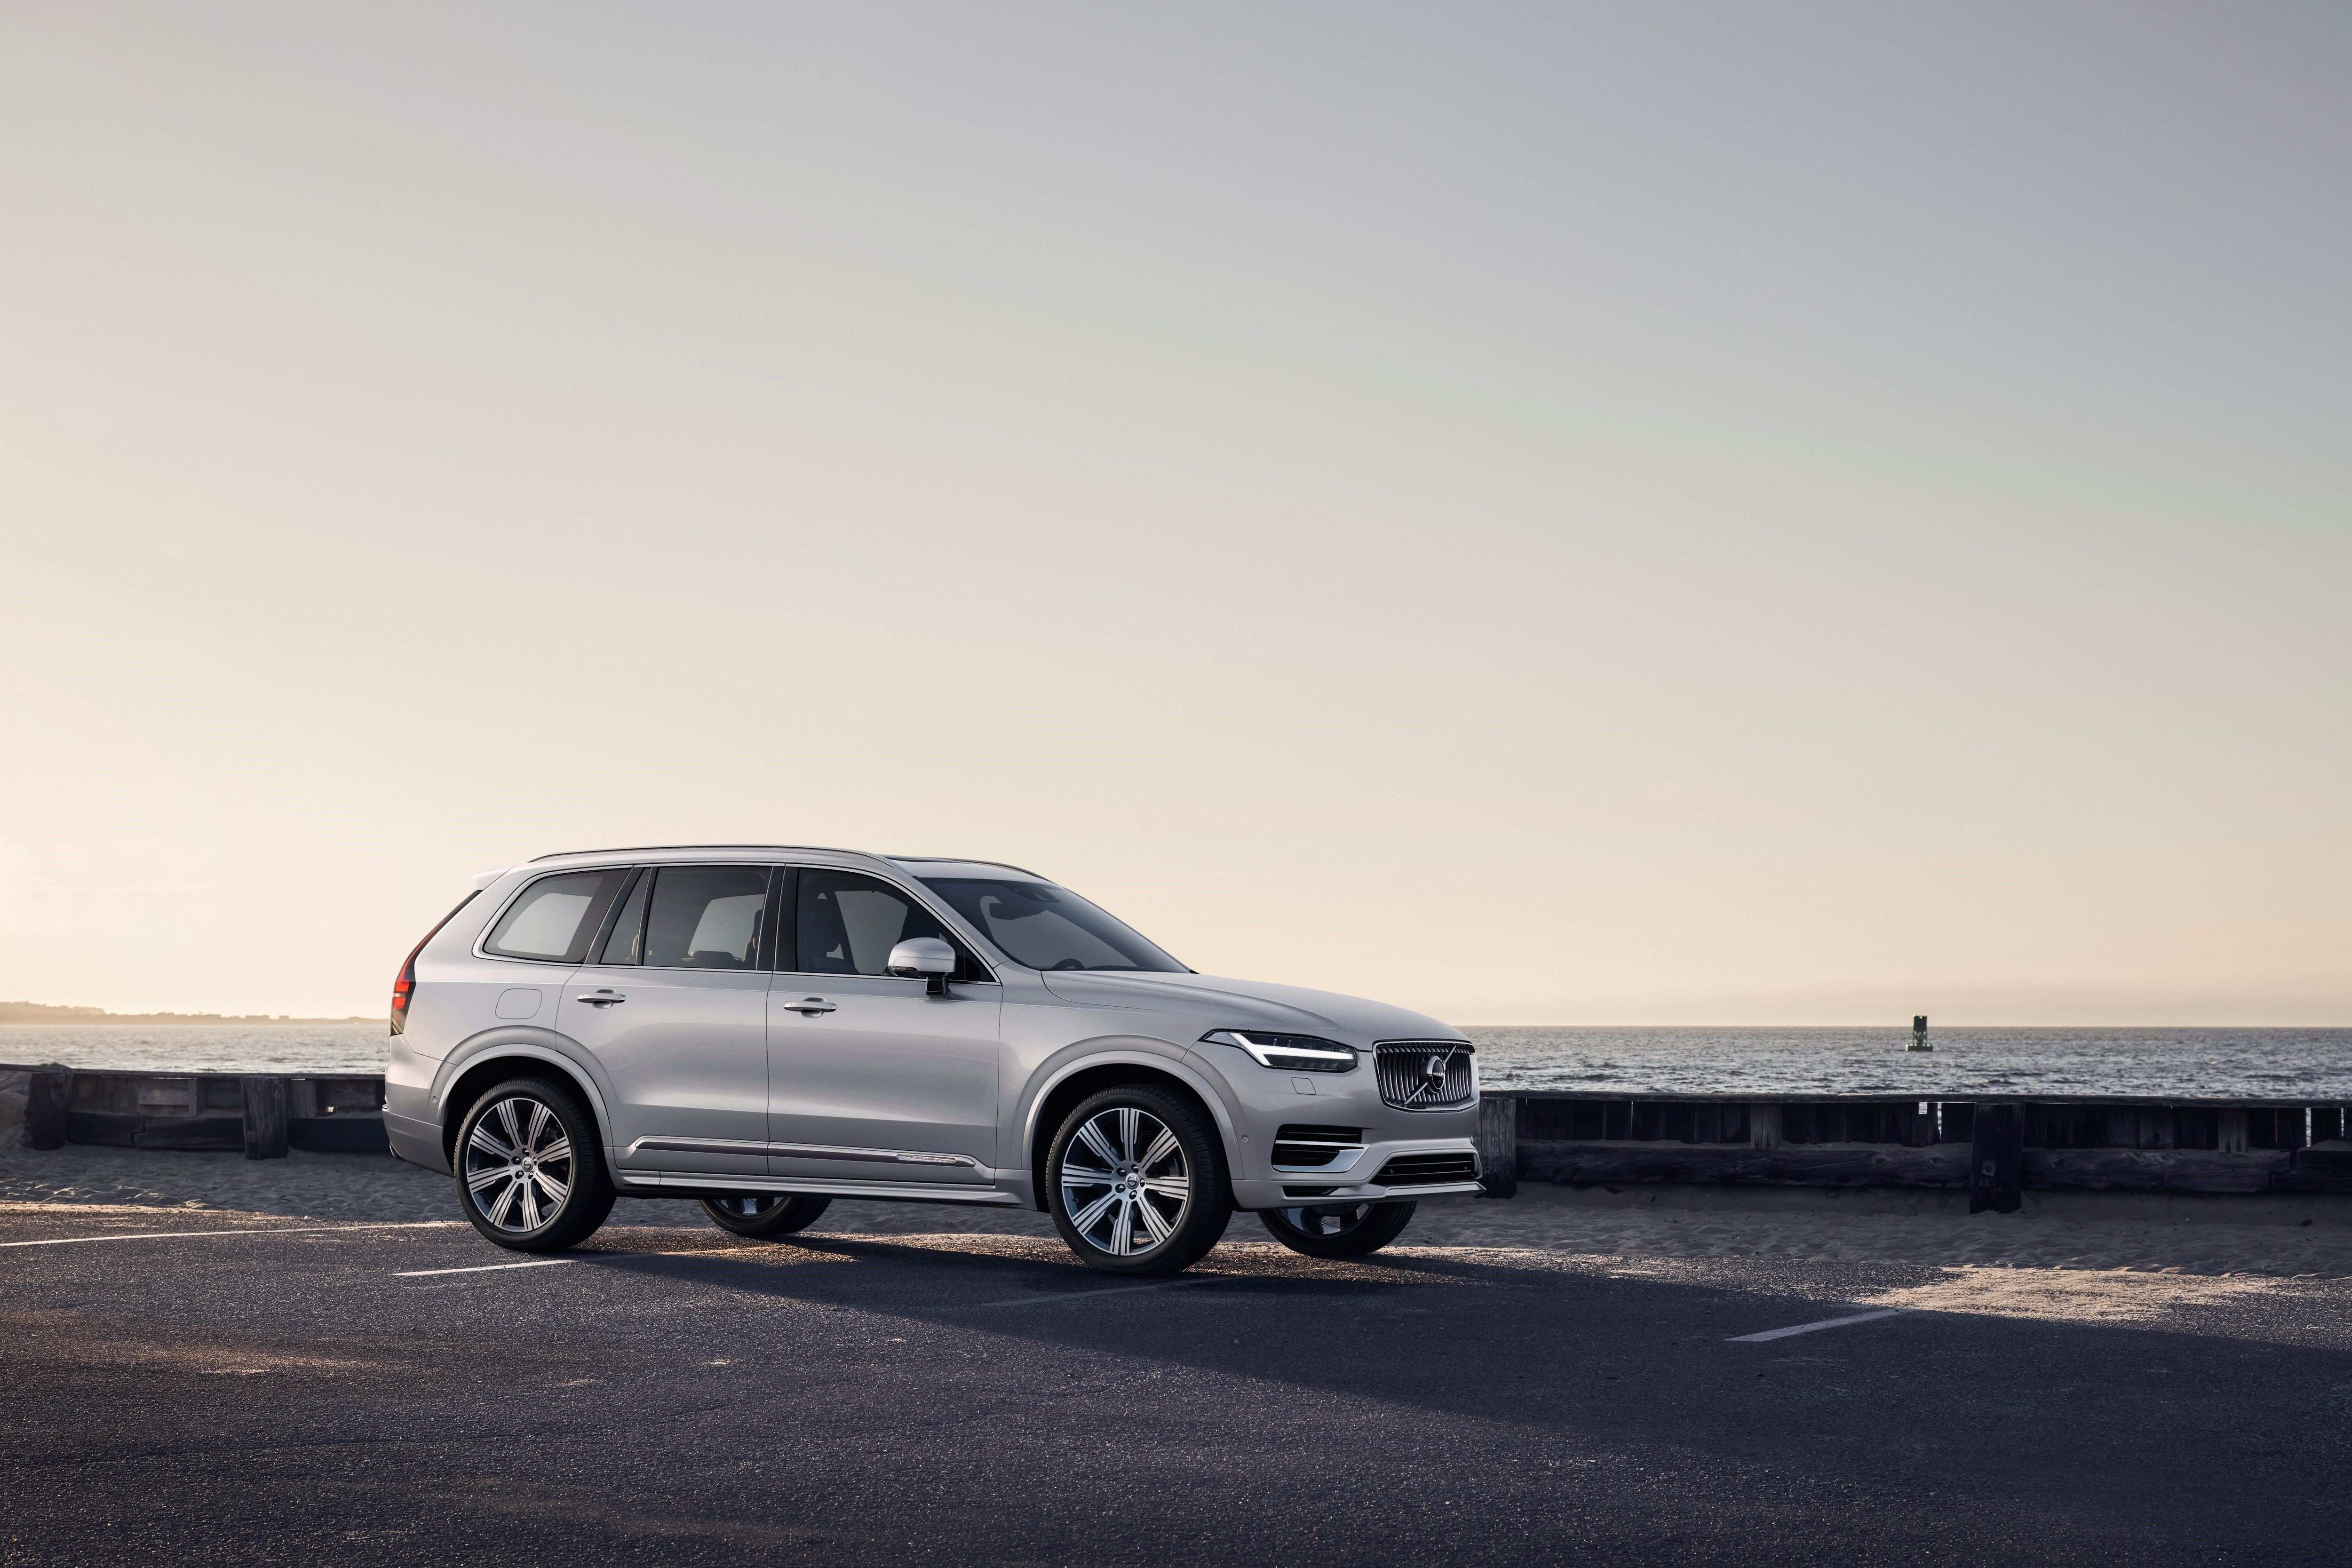 37 New When Is The 2020 Volvo Xc90 Coming Out Pricing for When Is The 2020 Volvo Xc90 Coming Out